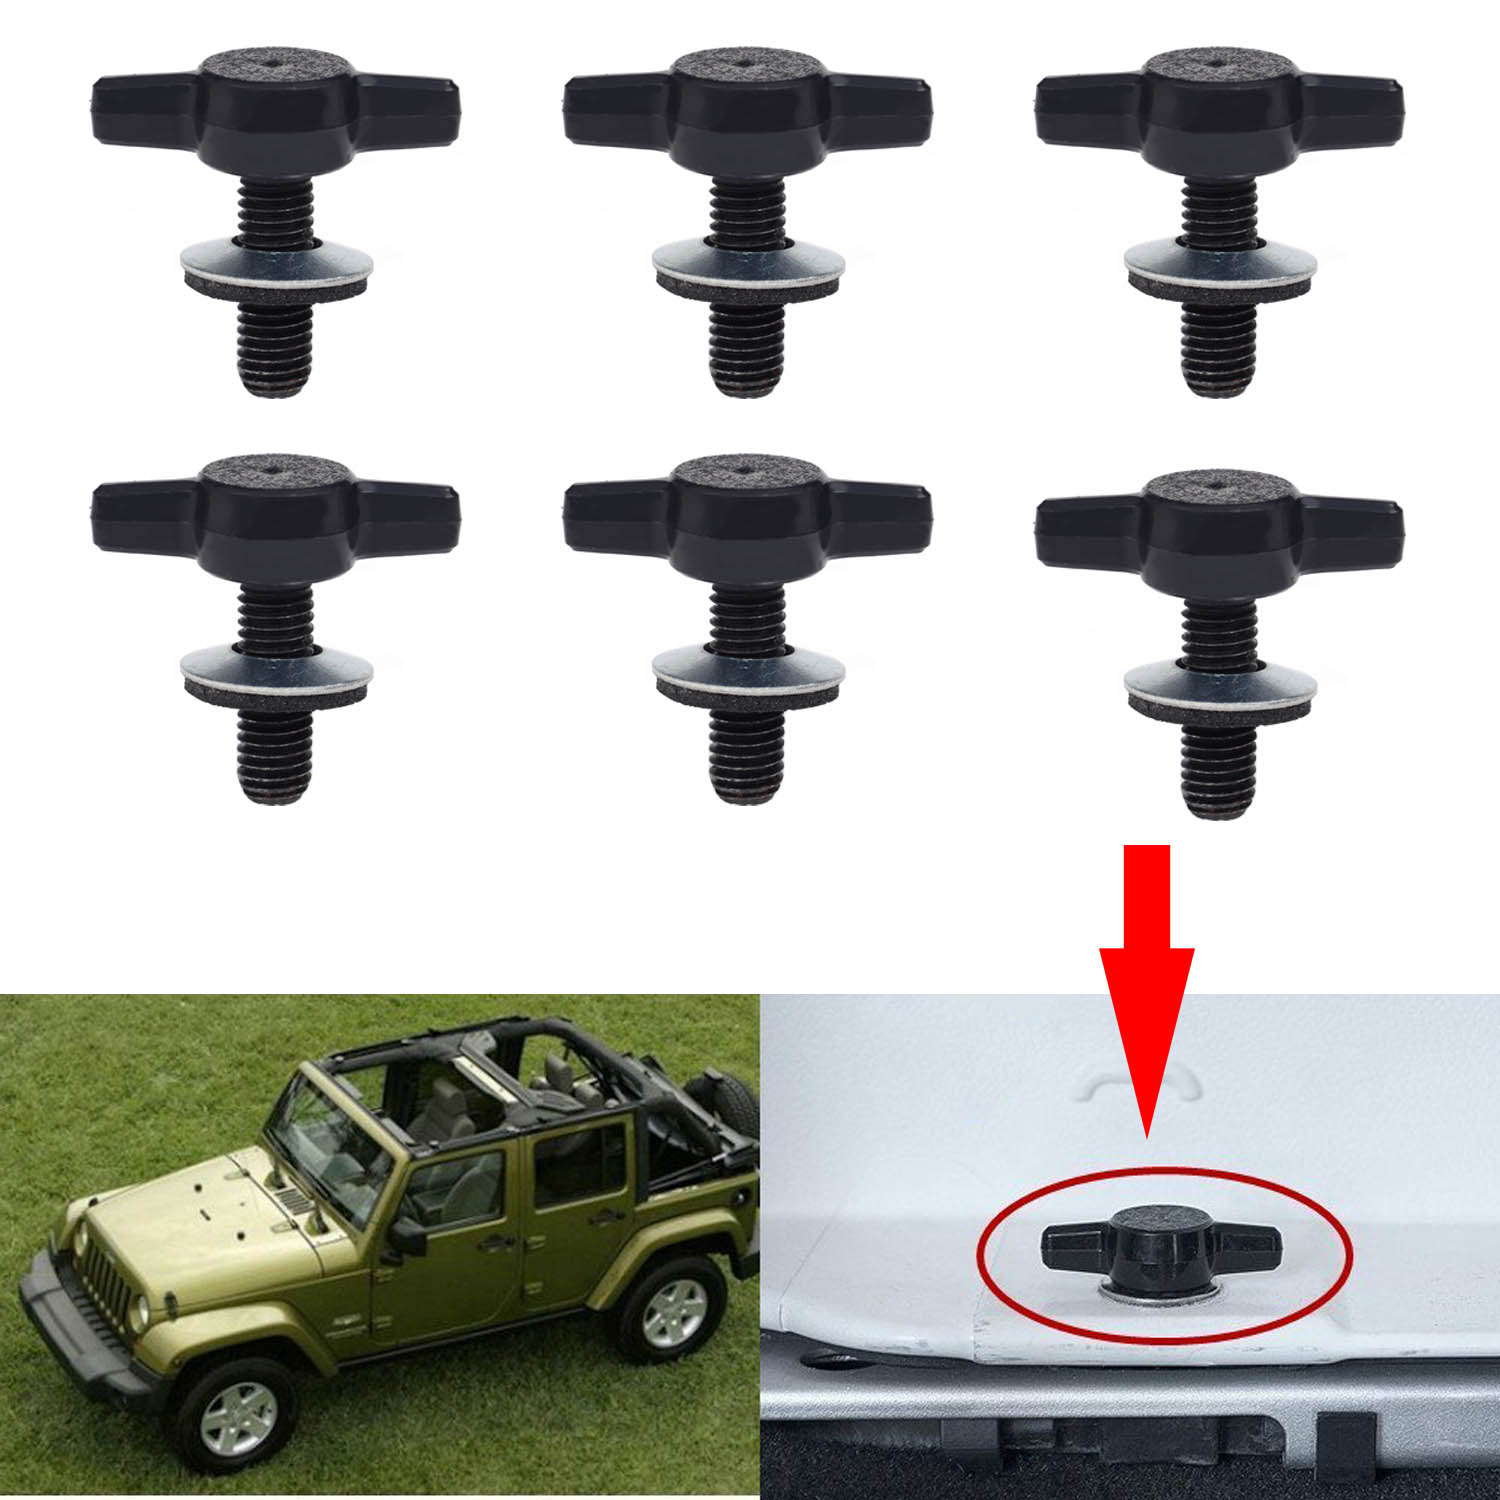 ... KAWELL Jeep Wrangler JK Hard Top Quick Removal Change Kit Set Of 6 Tee  Knobs Fastener